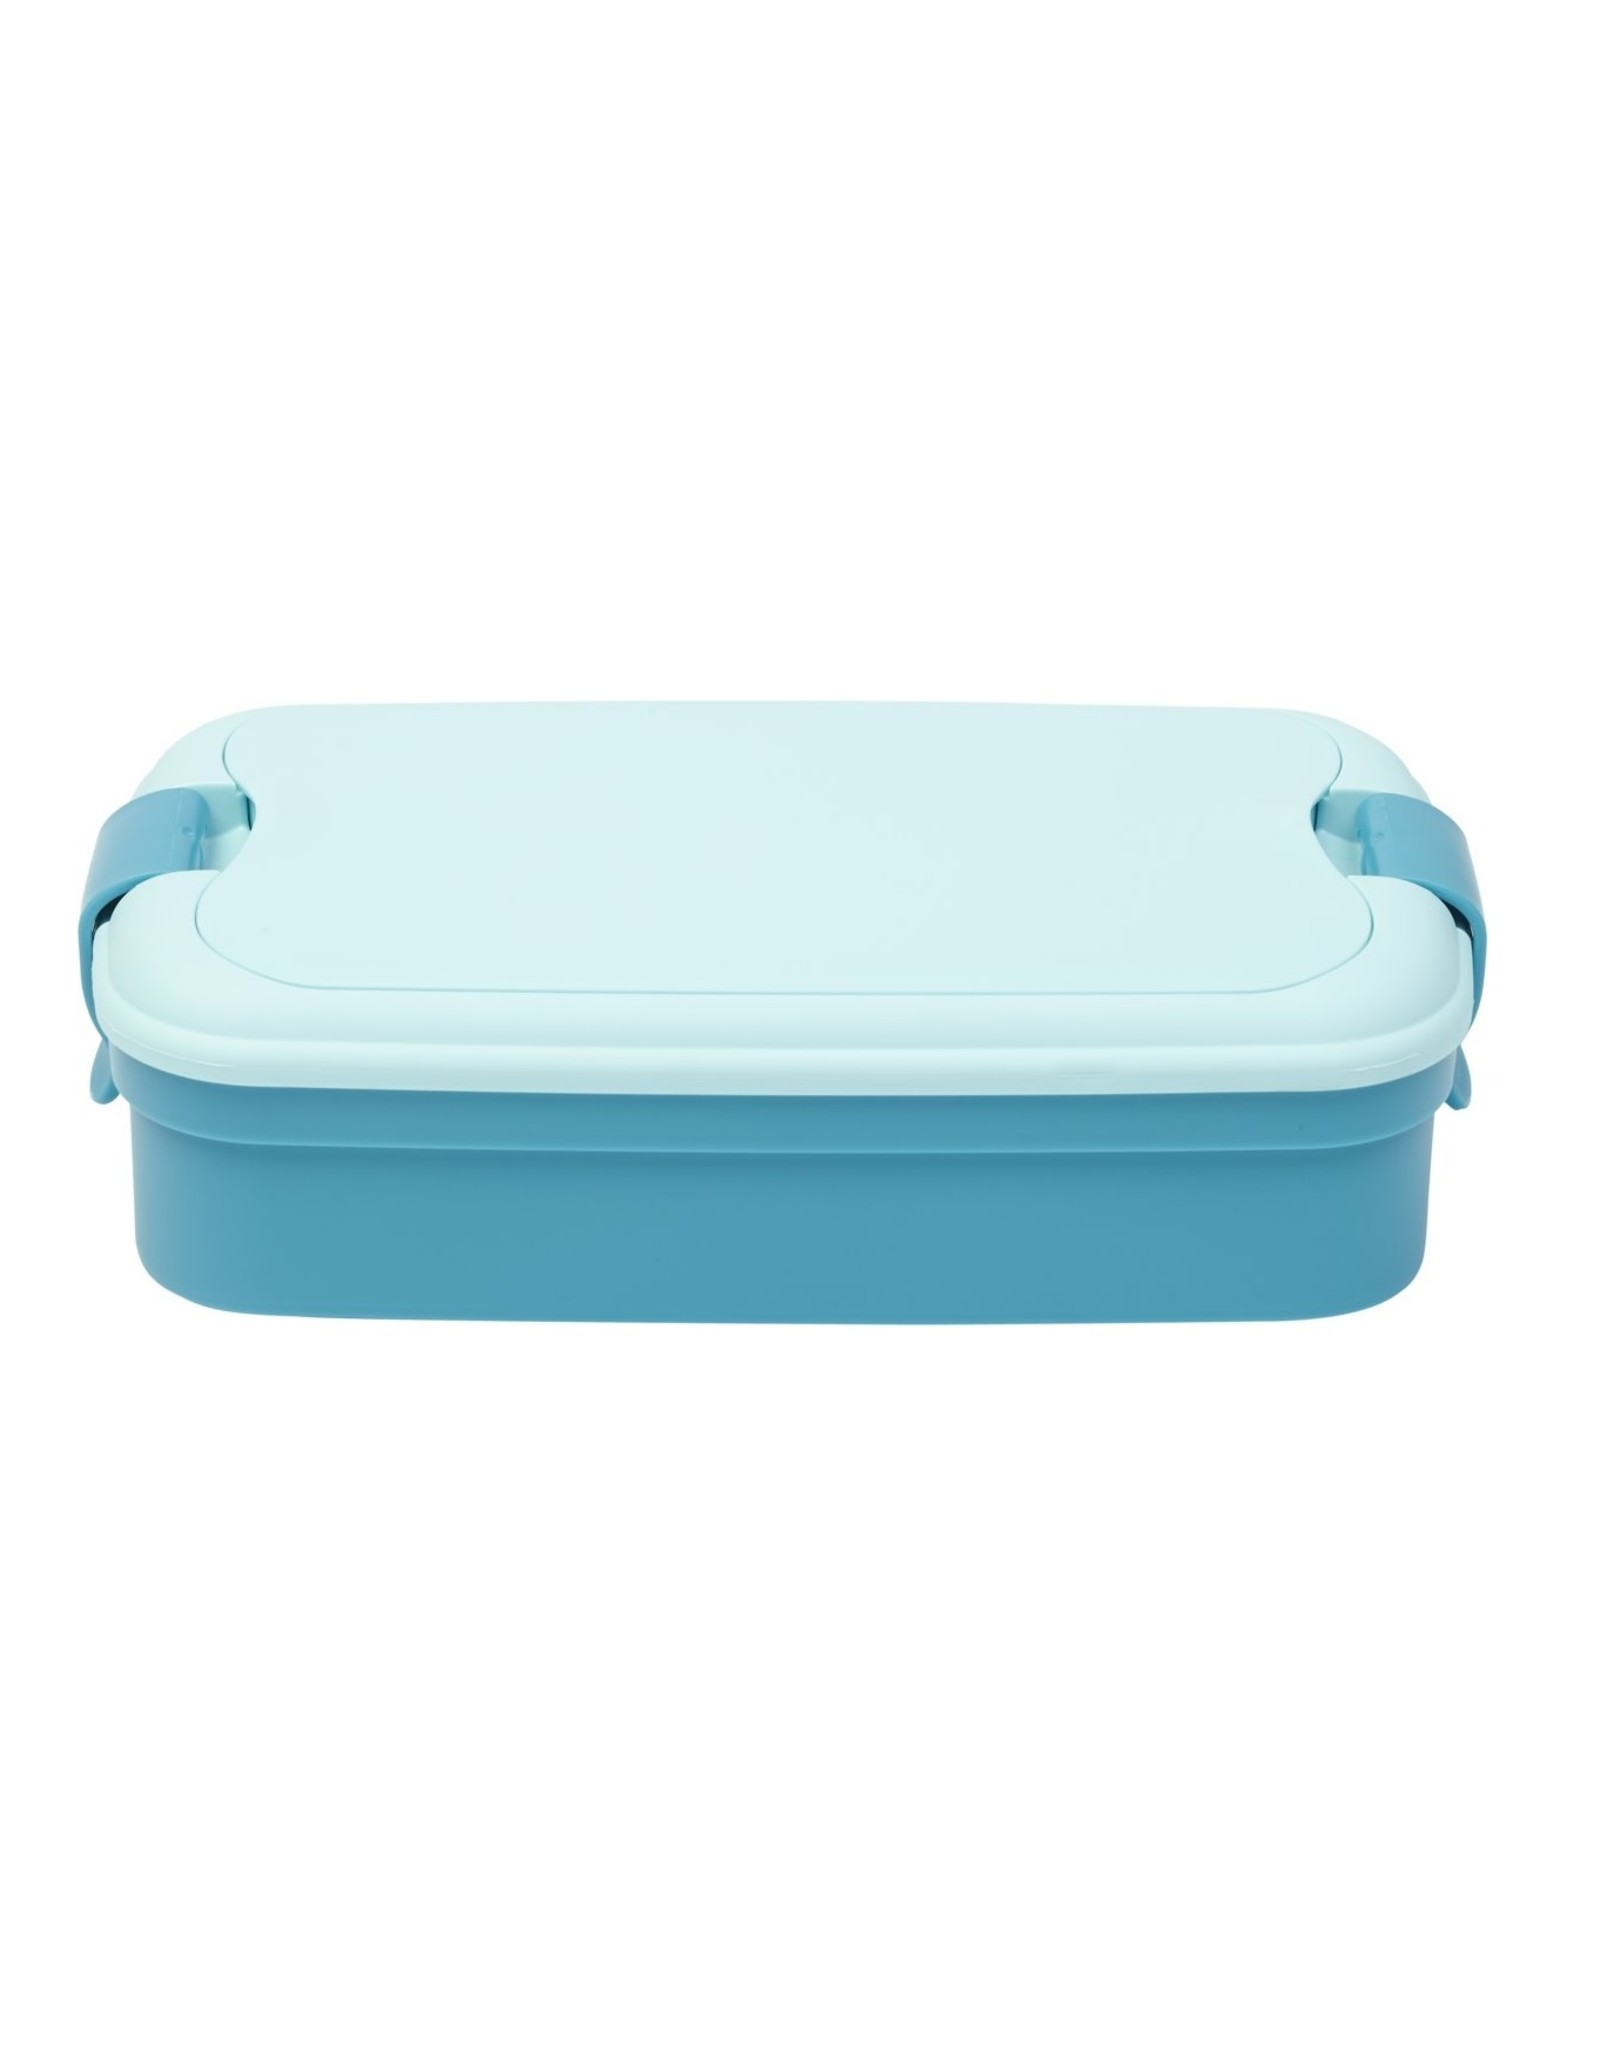 Curver - Lunch & go - Lunch box with Cutlery - Blue